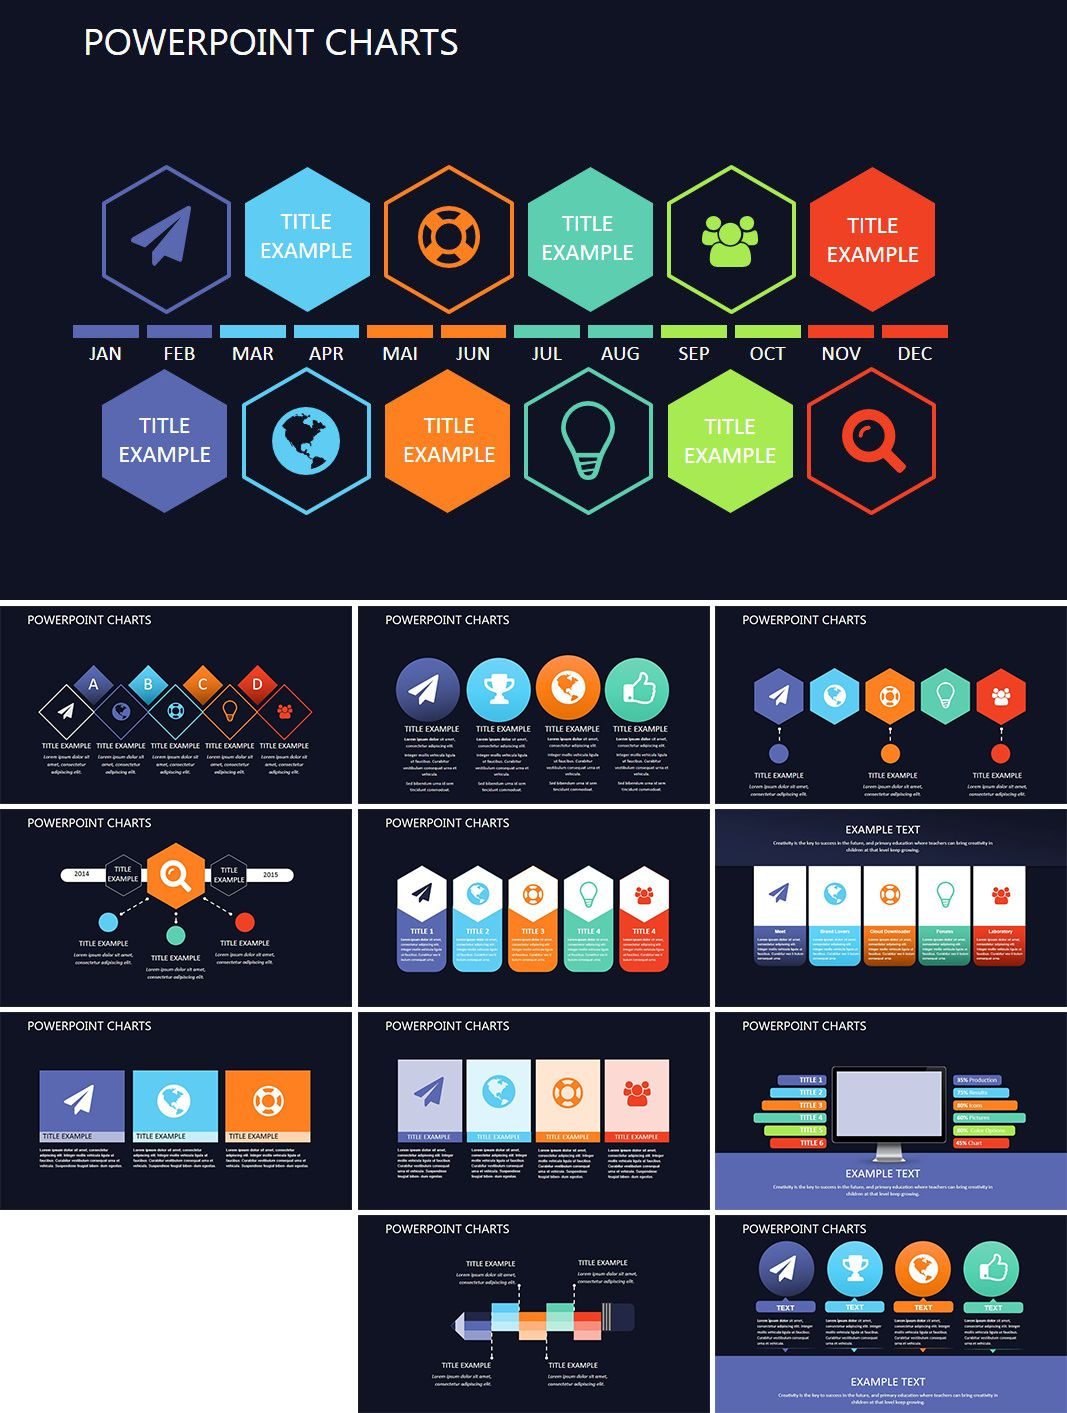 Search Engine Optimization Powerpoint Charts Powerpoint Charts